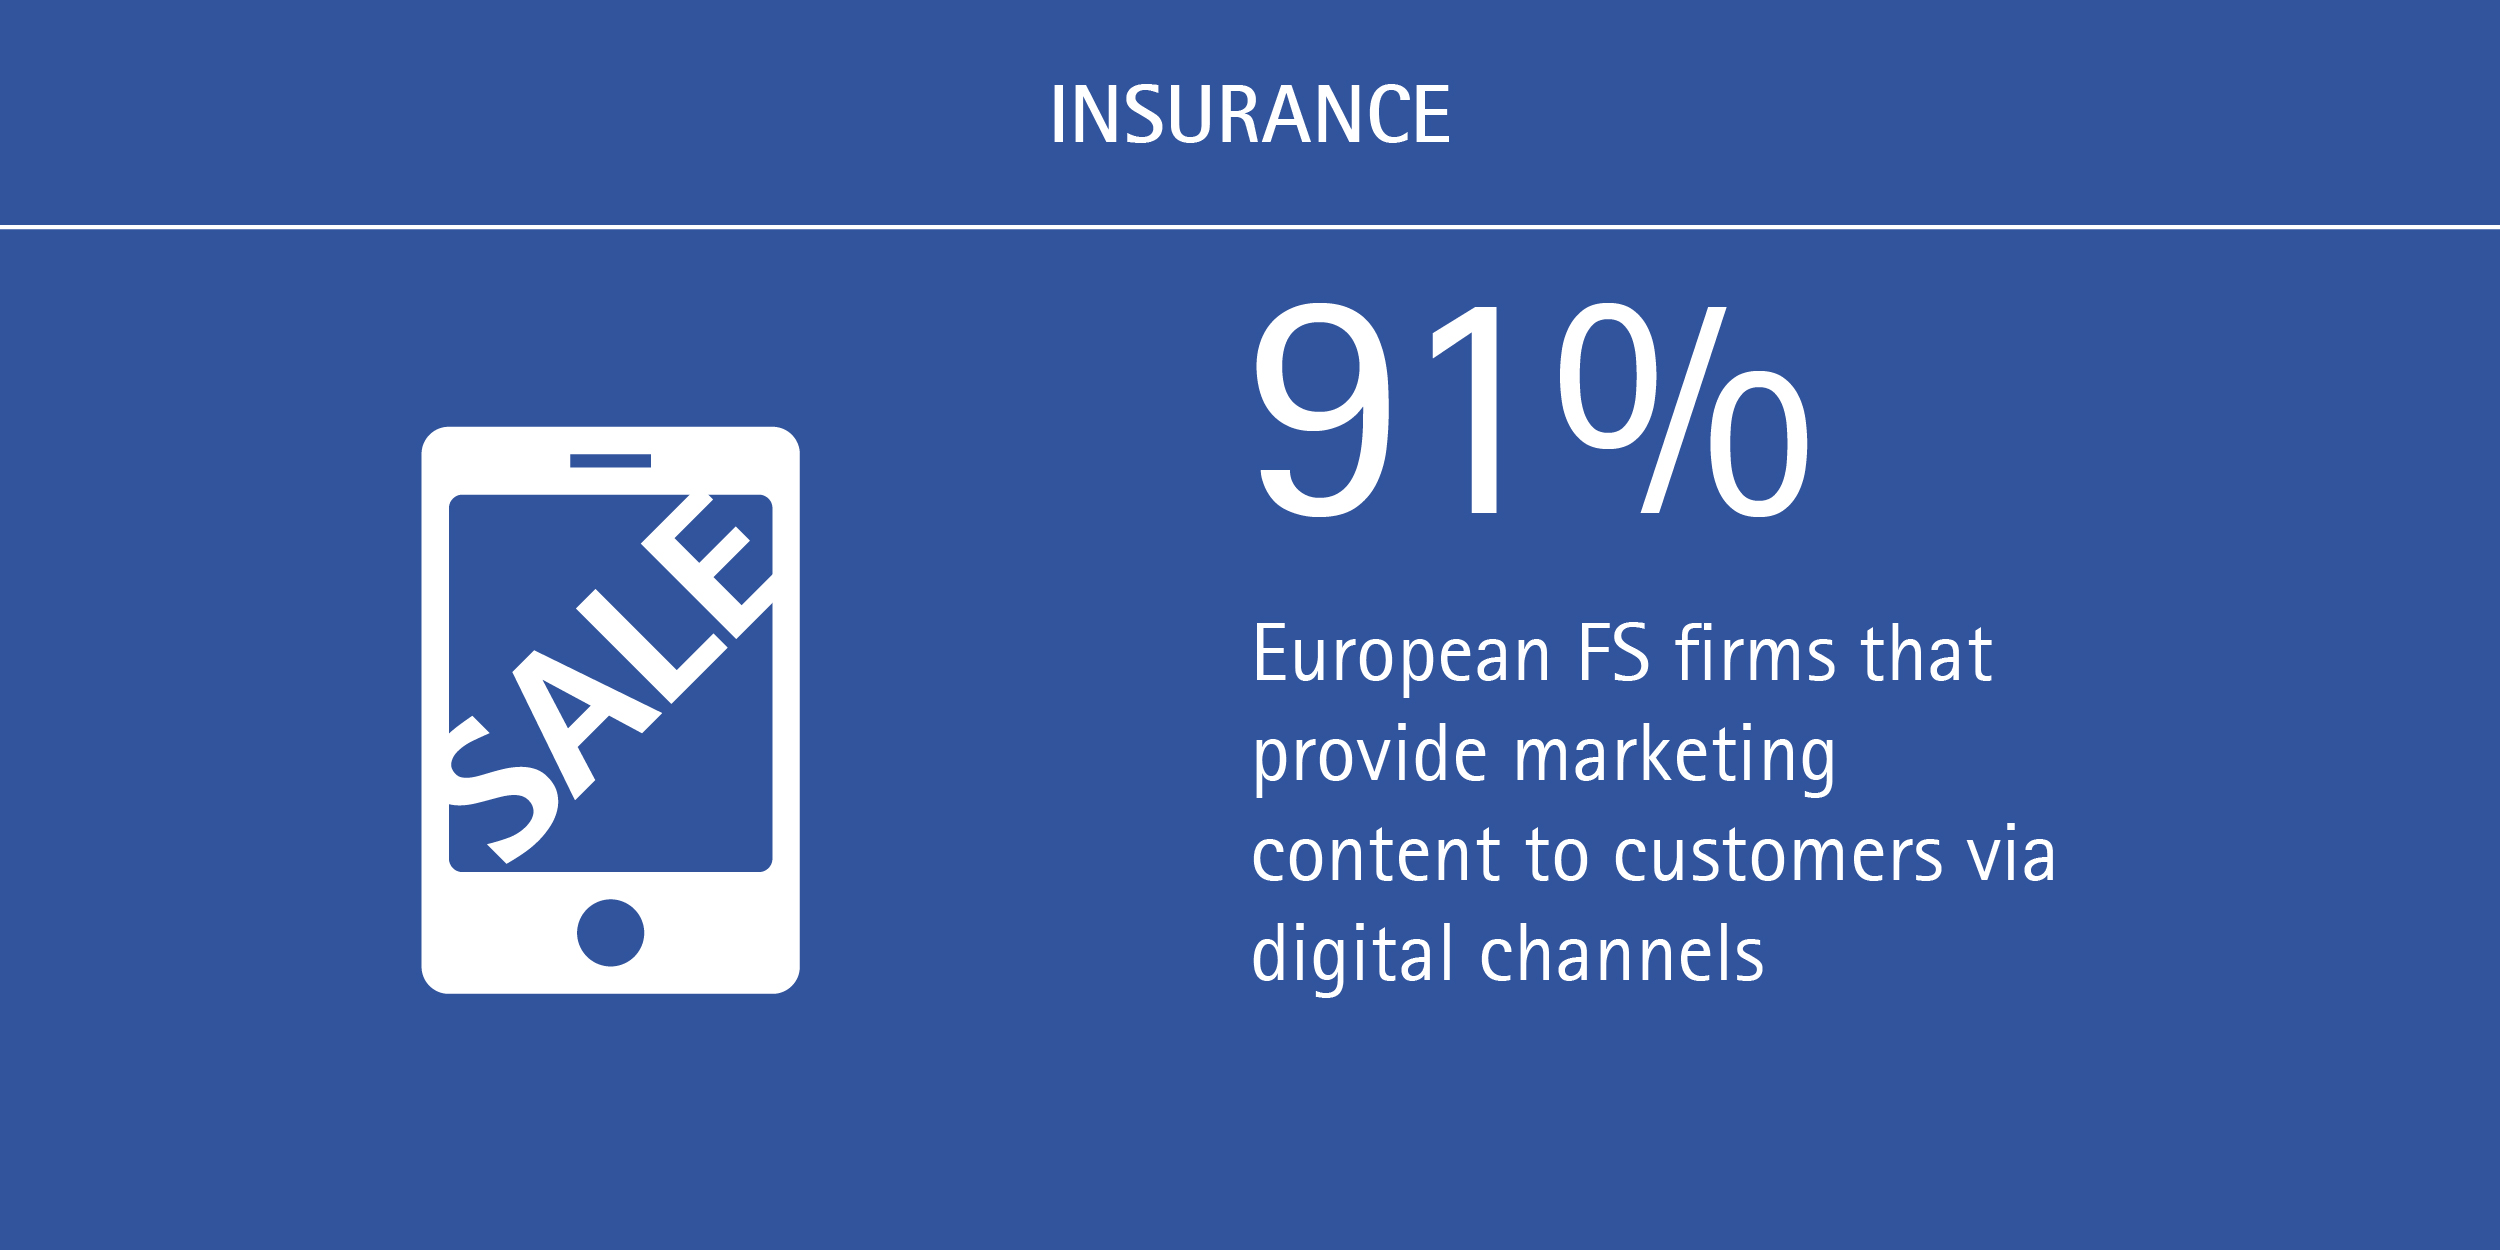 European financial services firms need to engage more with digital customers_Accenture INS (Figure 1)